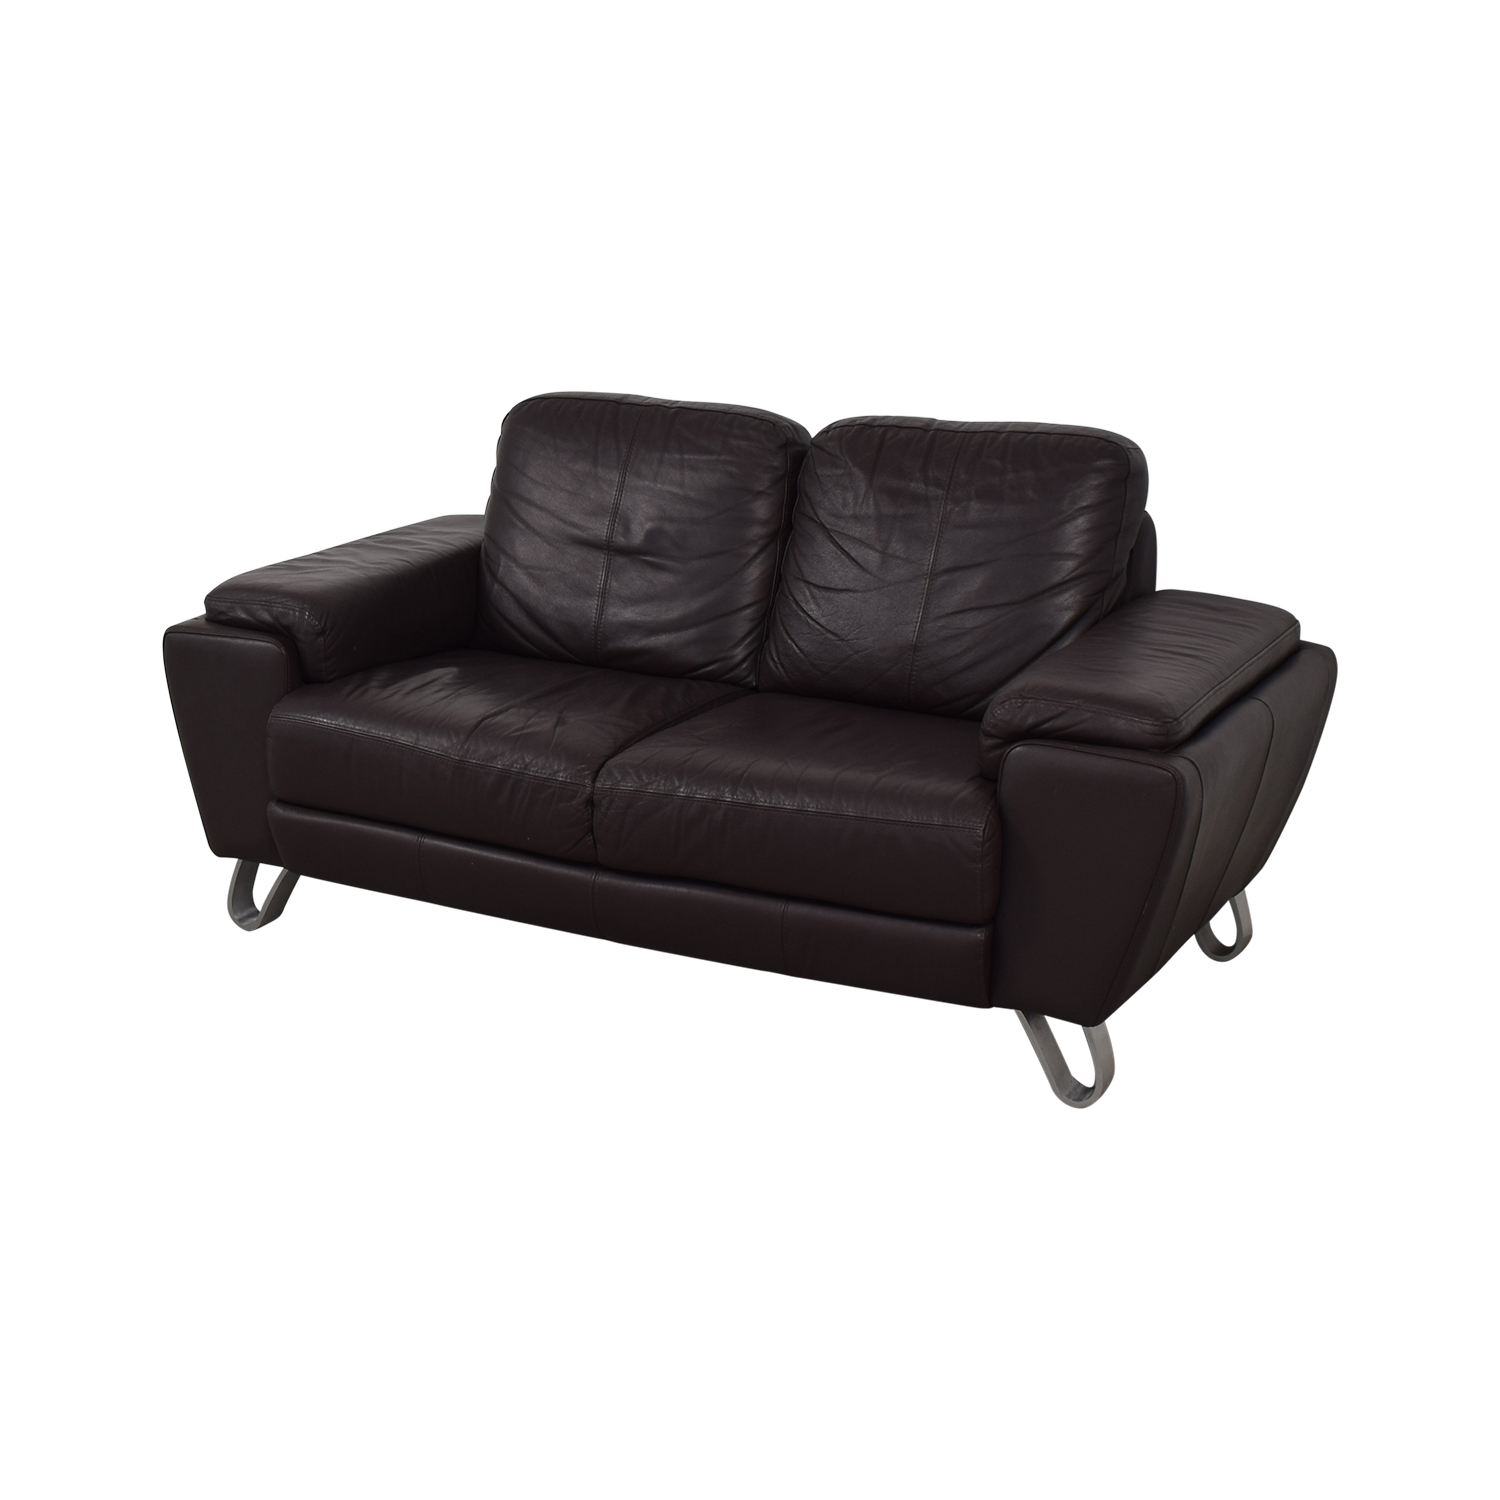 Michaelangelo Design Michaelangelo Design Brown Two-Cushion Loveseat second hand